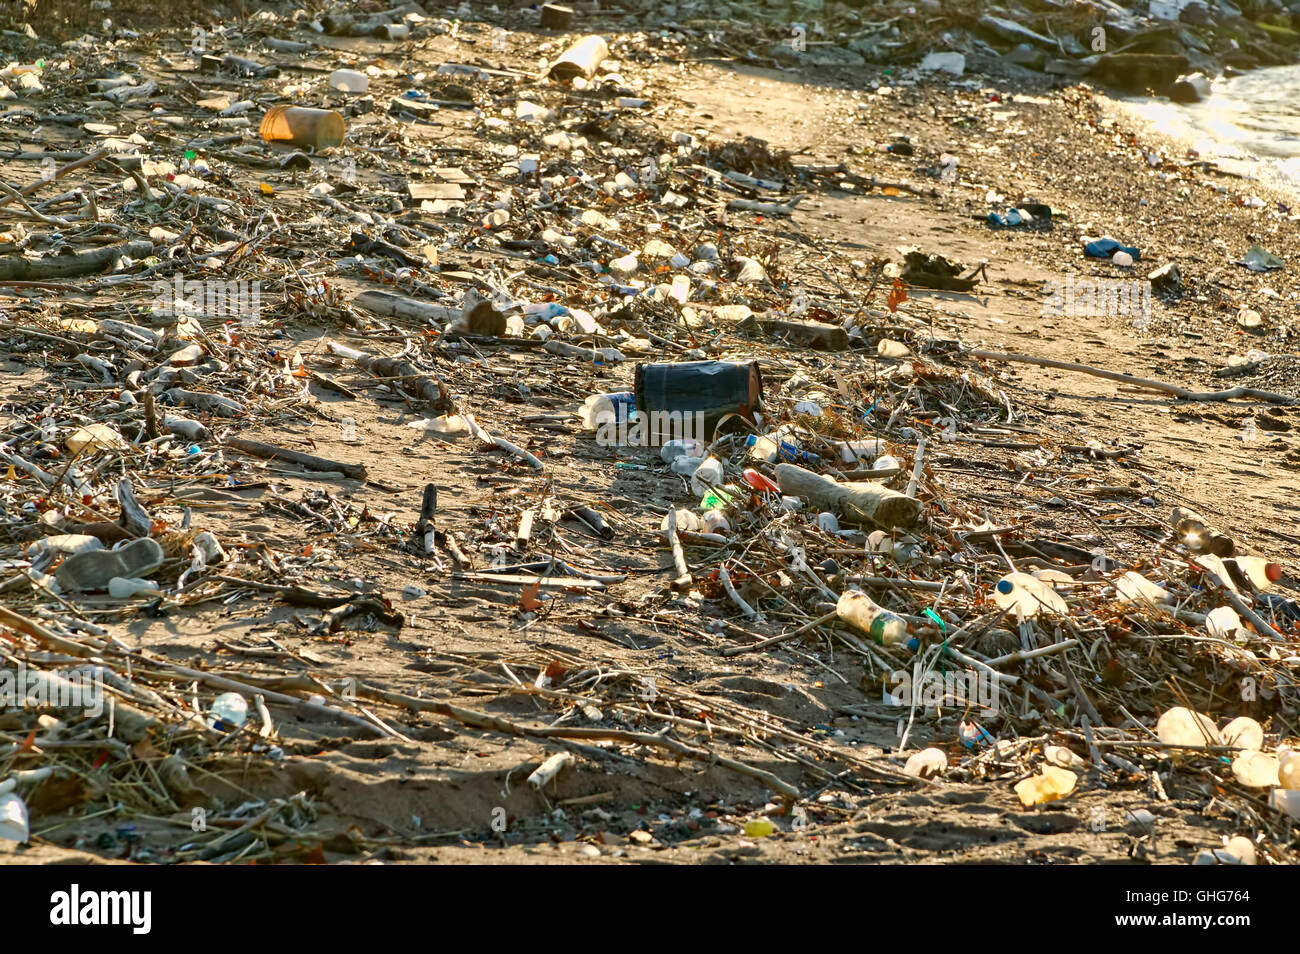 View of garbage mostly plastic bottles on a waterway in the industrial area of New Jersey - Stock Image